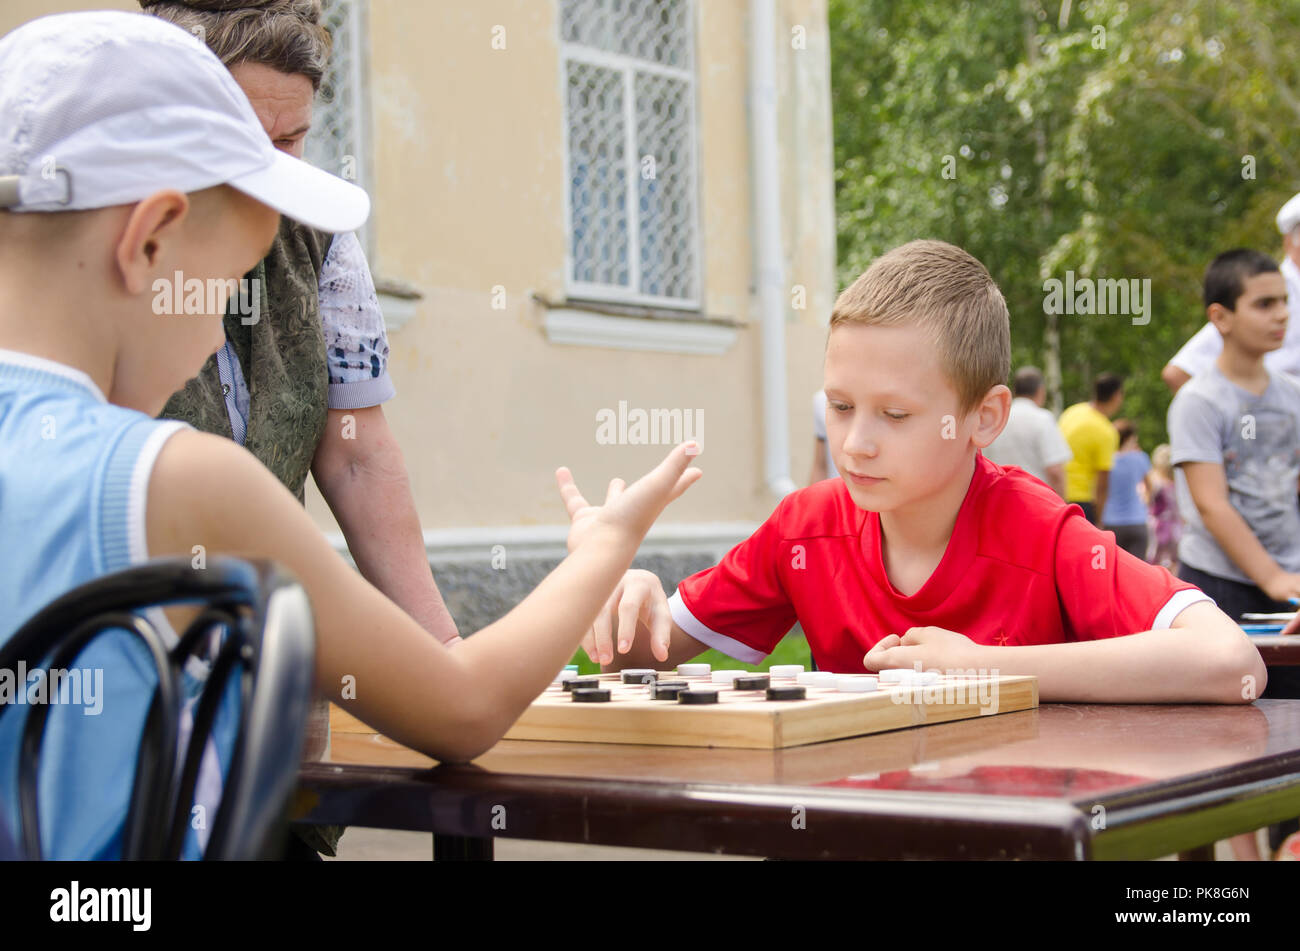 Komsomolsk-on-Amur, Russia - August 8, 2016. Public open Railroader's day. two boys play checkers in park. amateur competitions Stock Photo